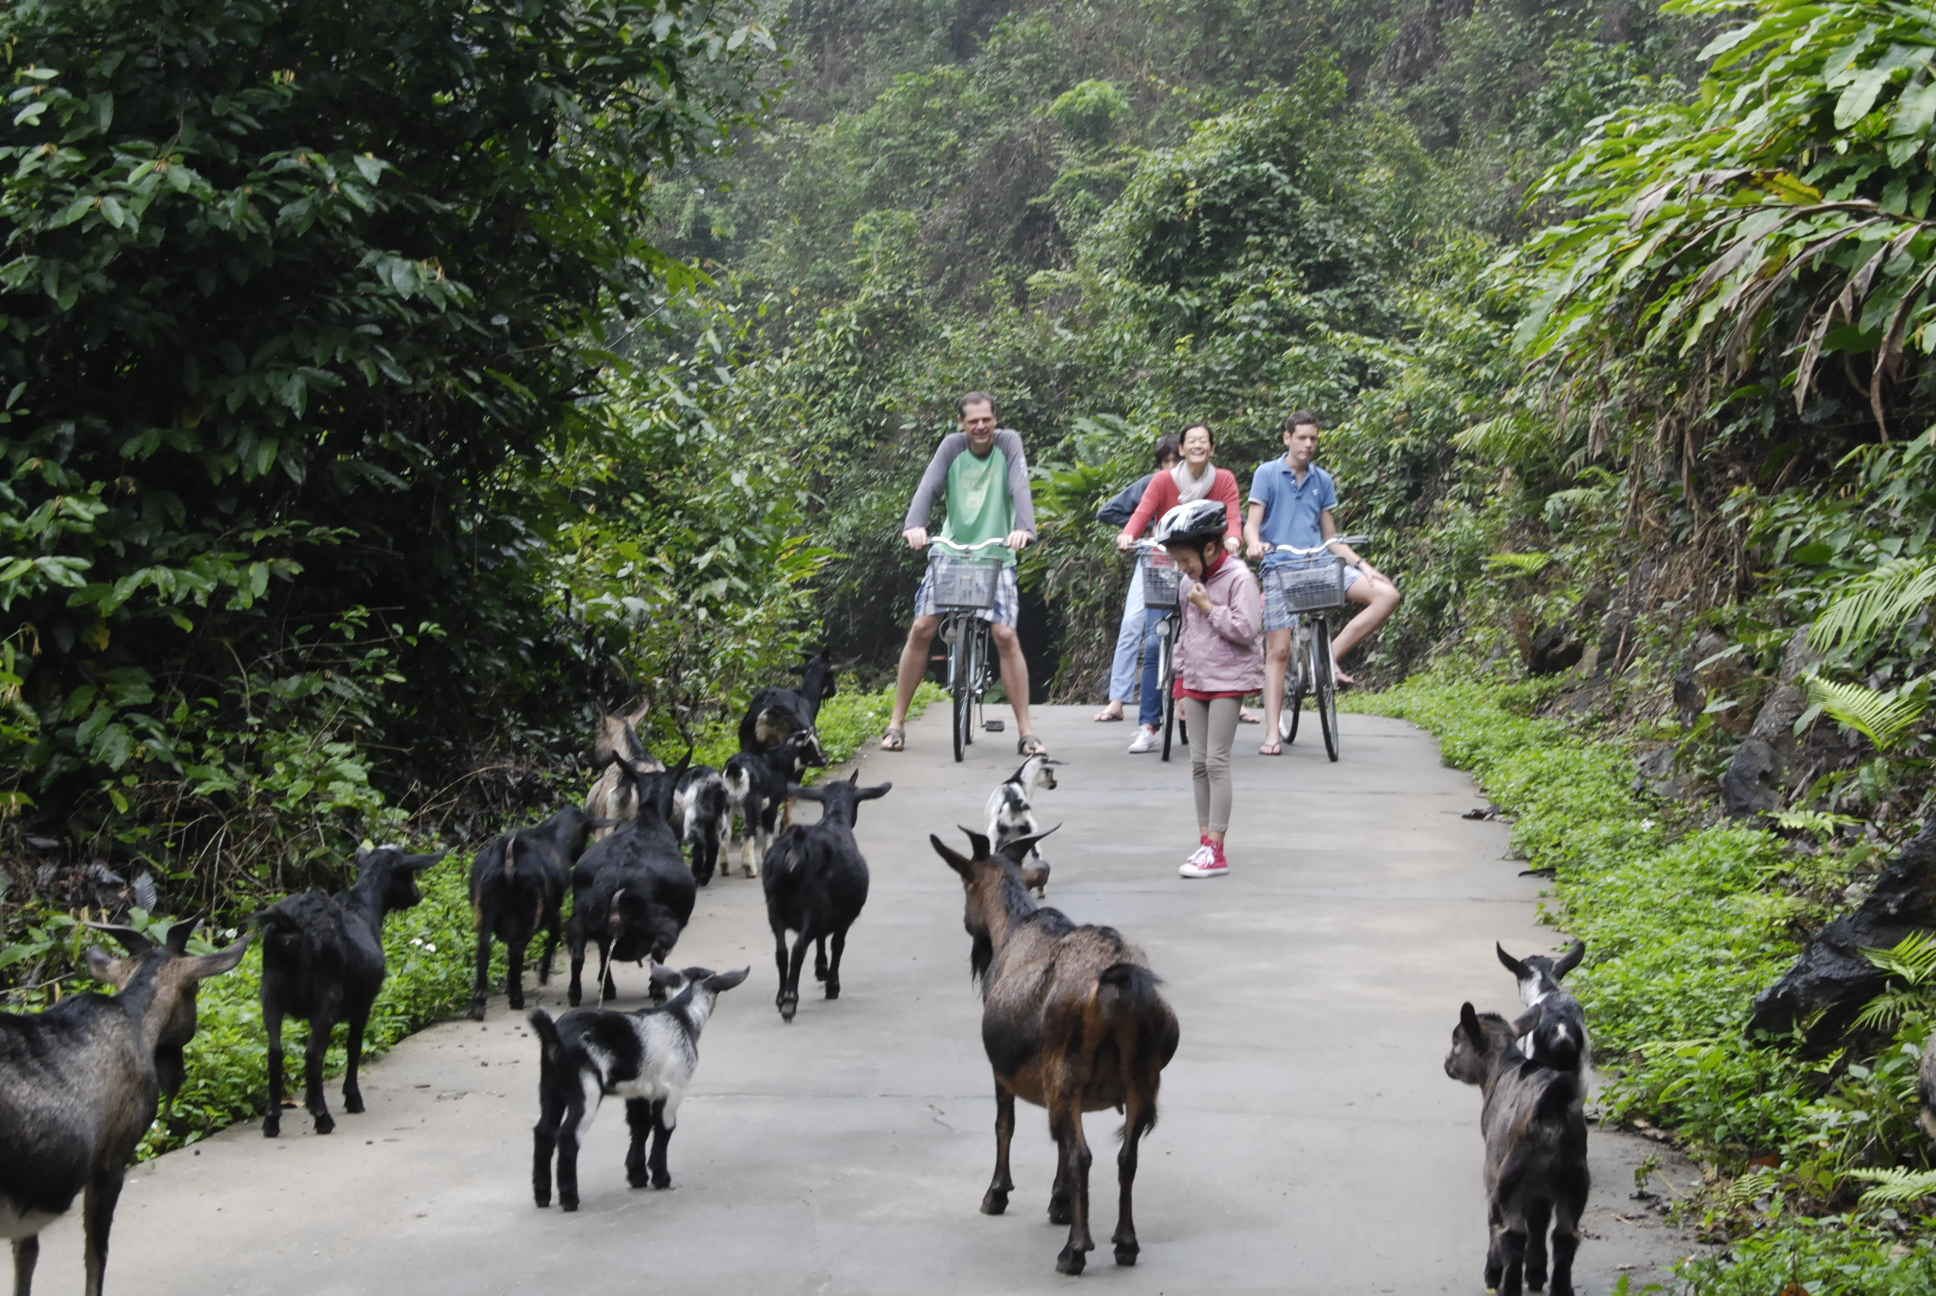 bycicling in viet hai village, things to do in halong bay